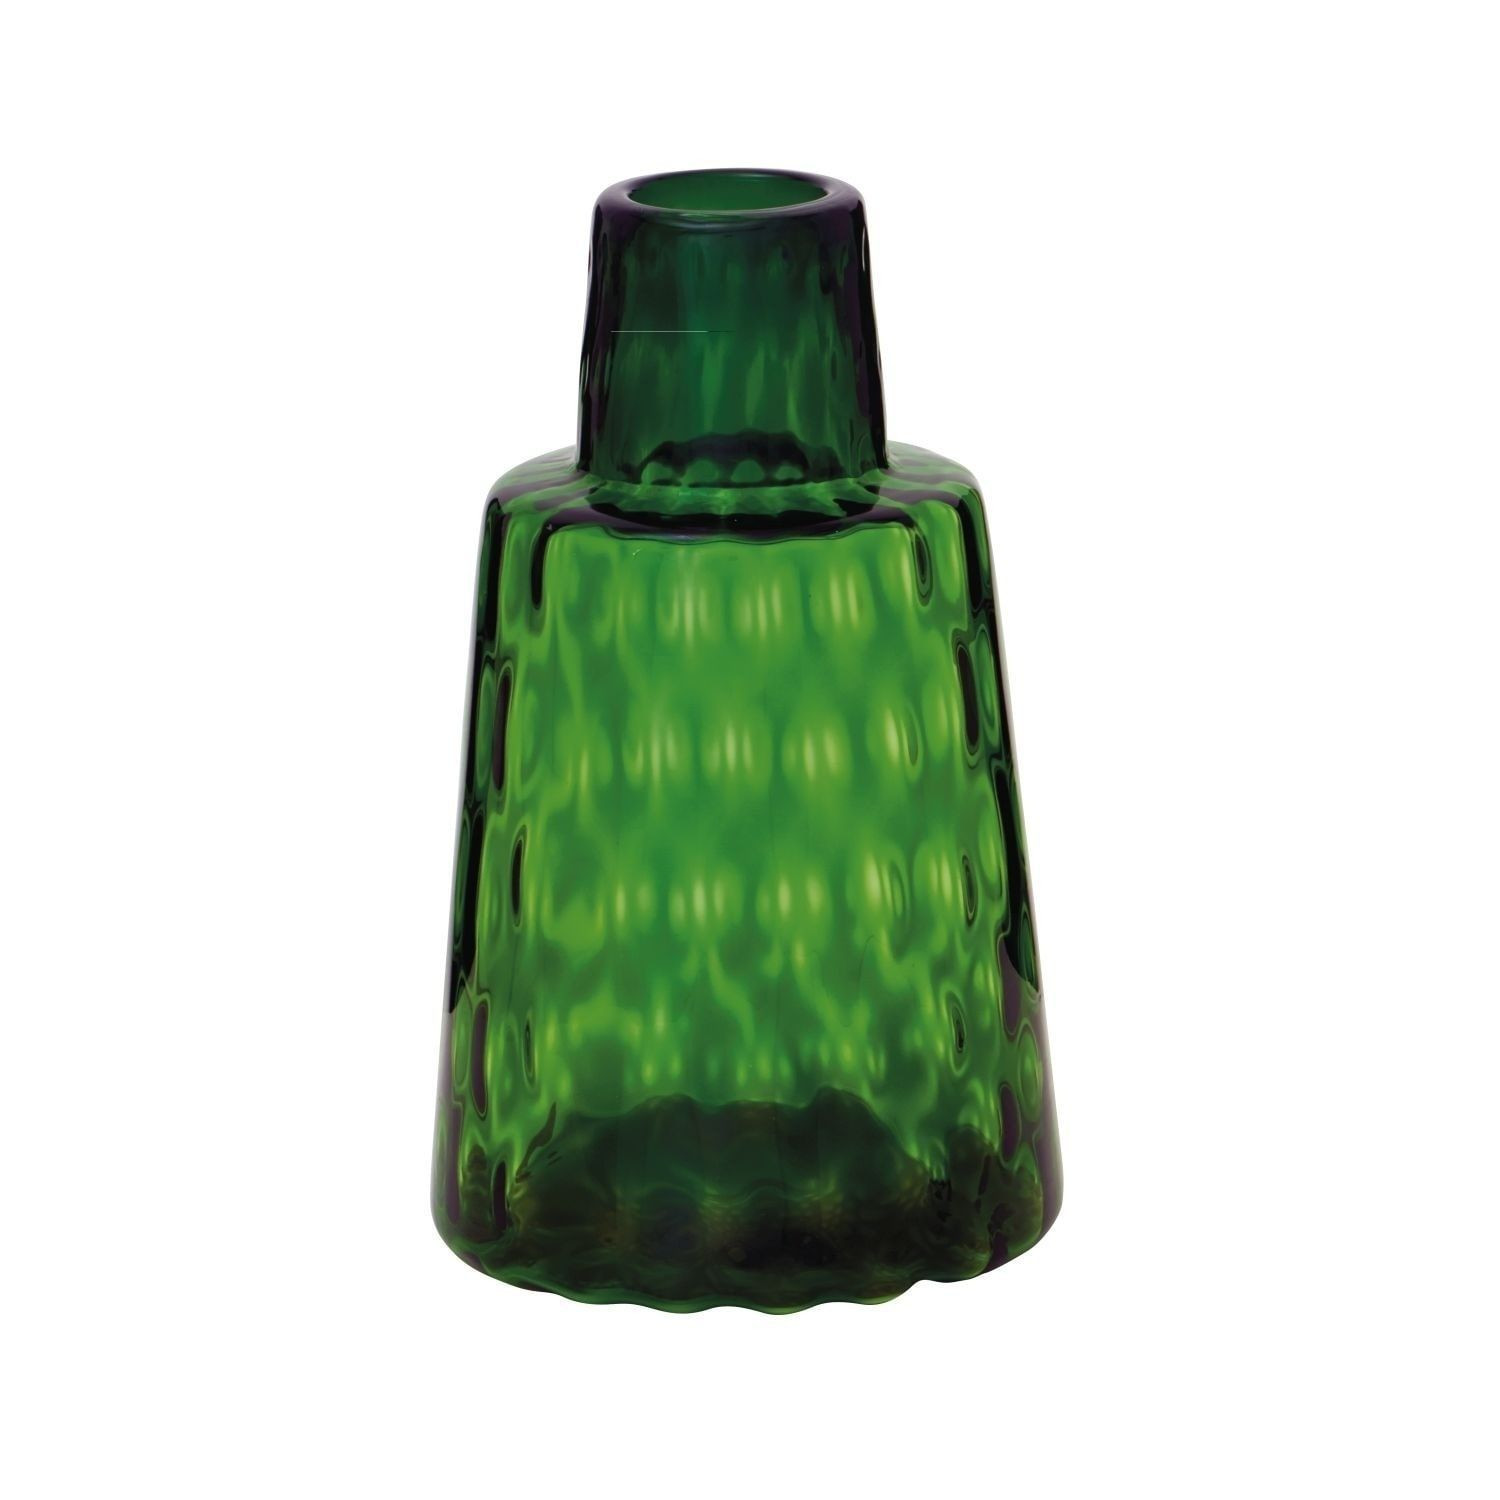 9 inch glass vase of studio 350 glass green vase 9 inches wide 14 inches high outlet pertaining to products